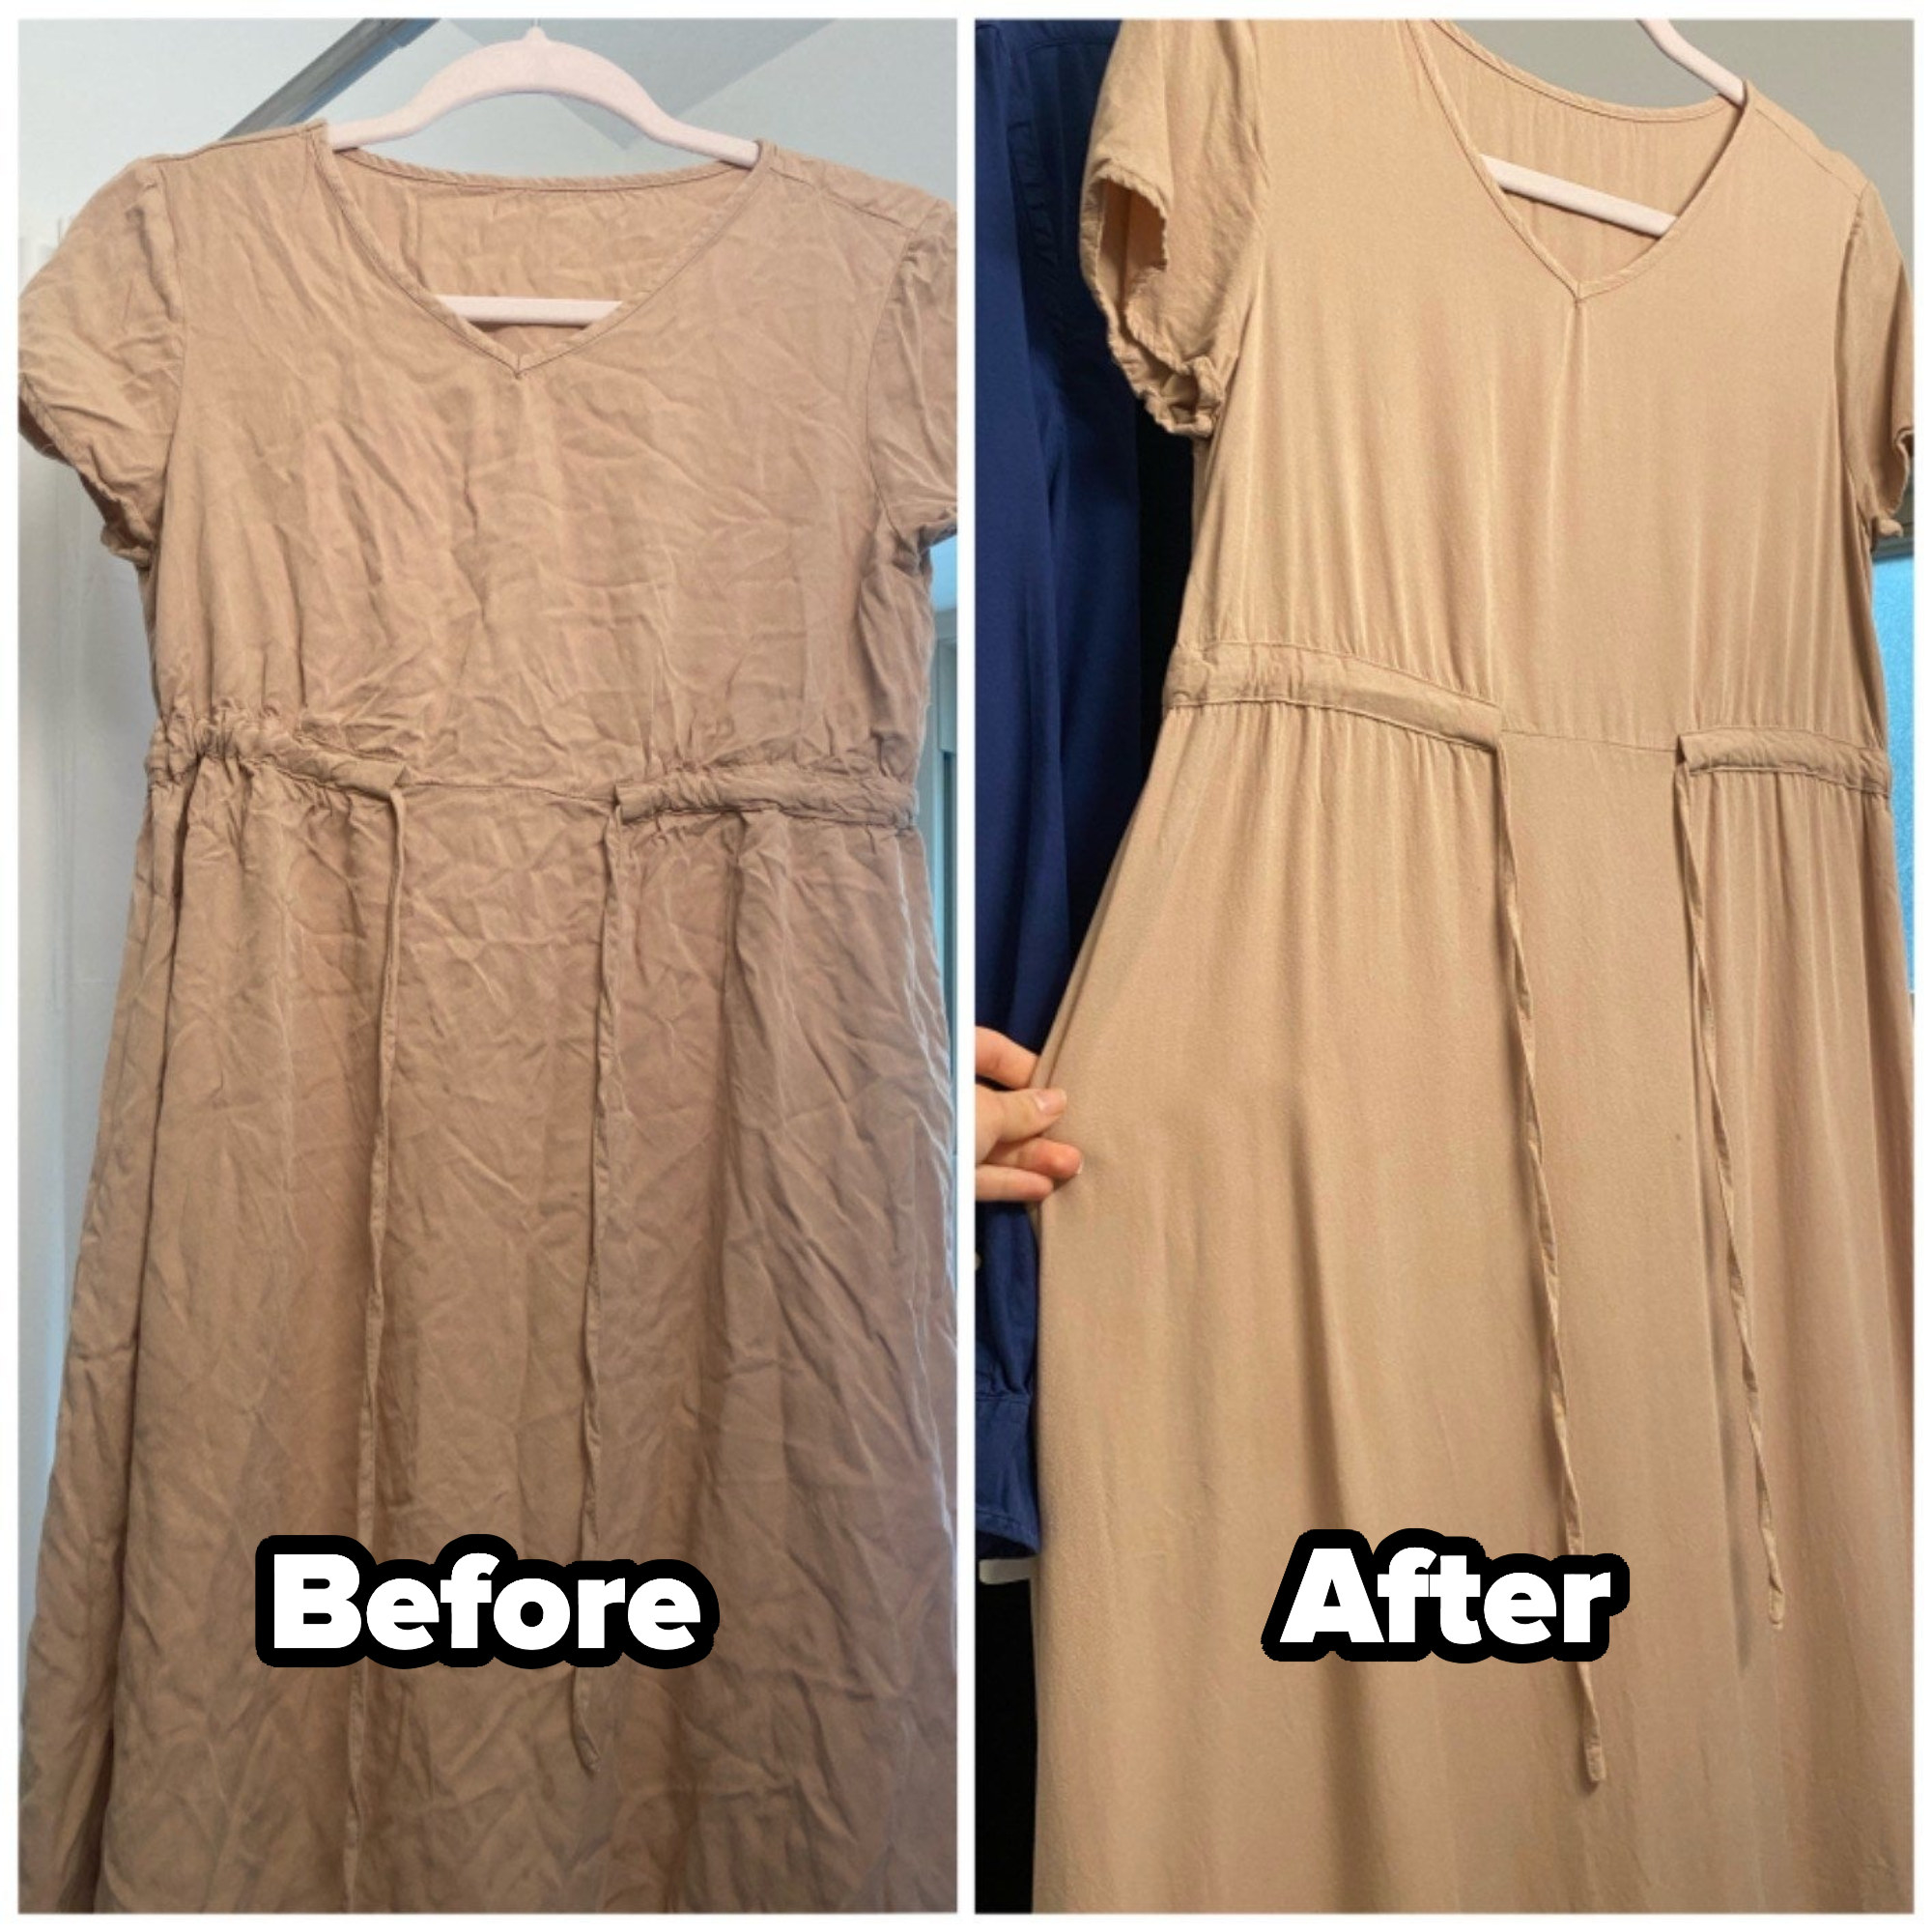 a reviewer image of a wrinkly dress before using the spray, and the same dress after using the spray